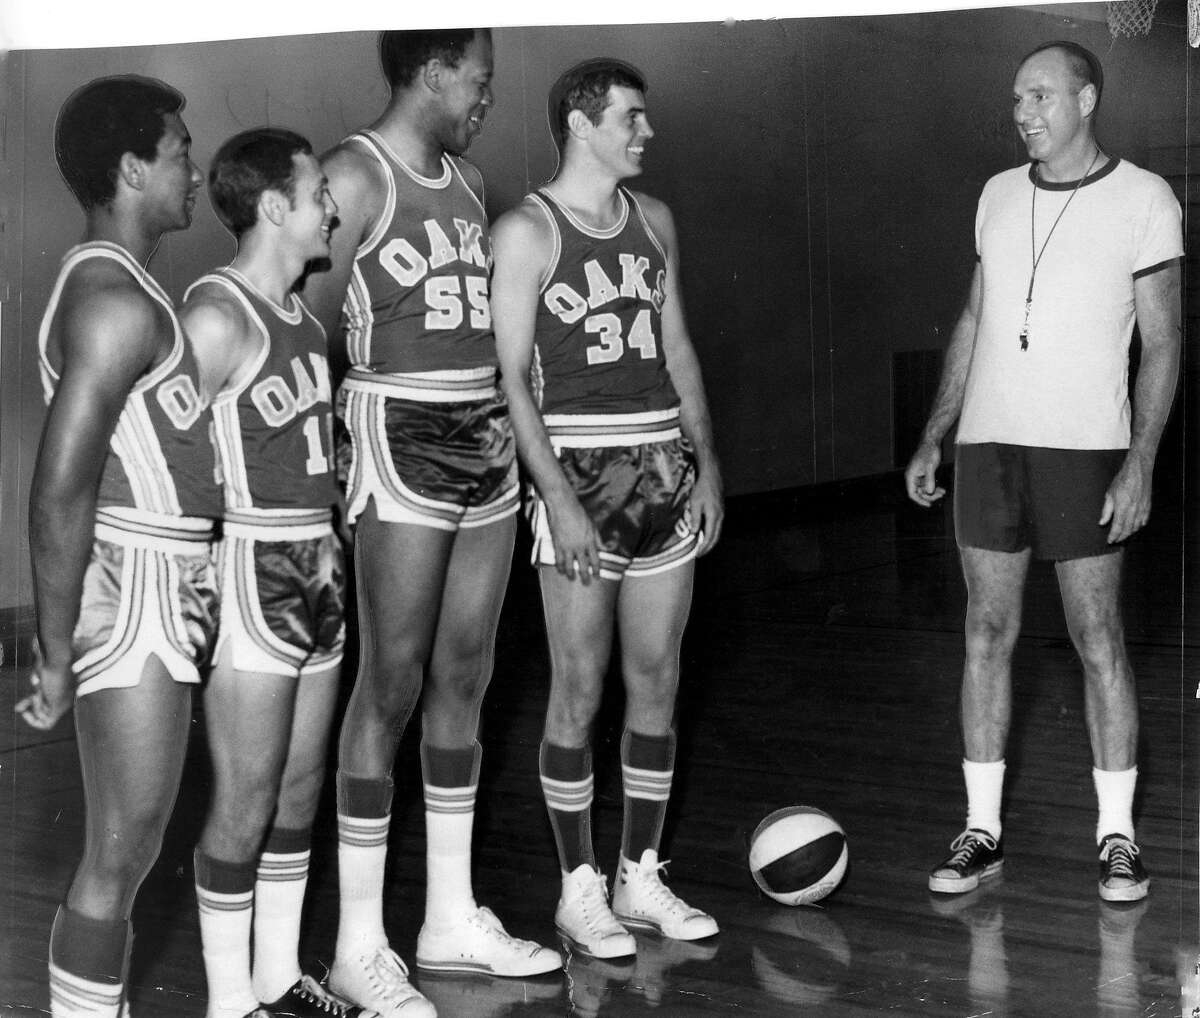 Oakland Oaks coach Alex Hannum with players, from left, Henry Logan, Larry Brown, Jim Hadnot and Doug Moe.